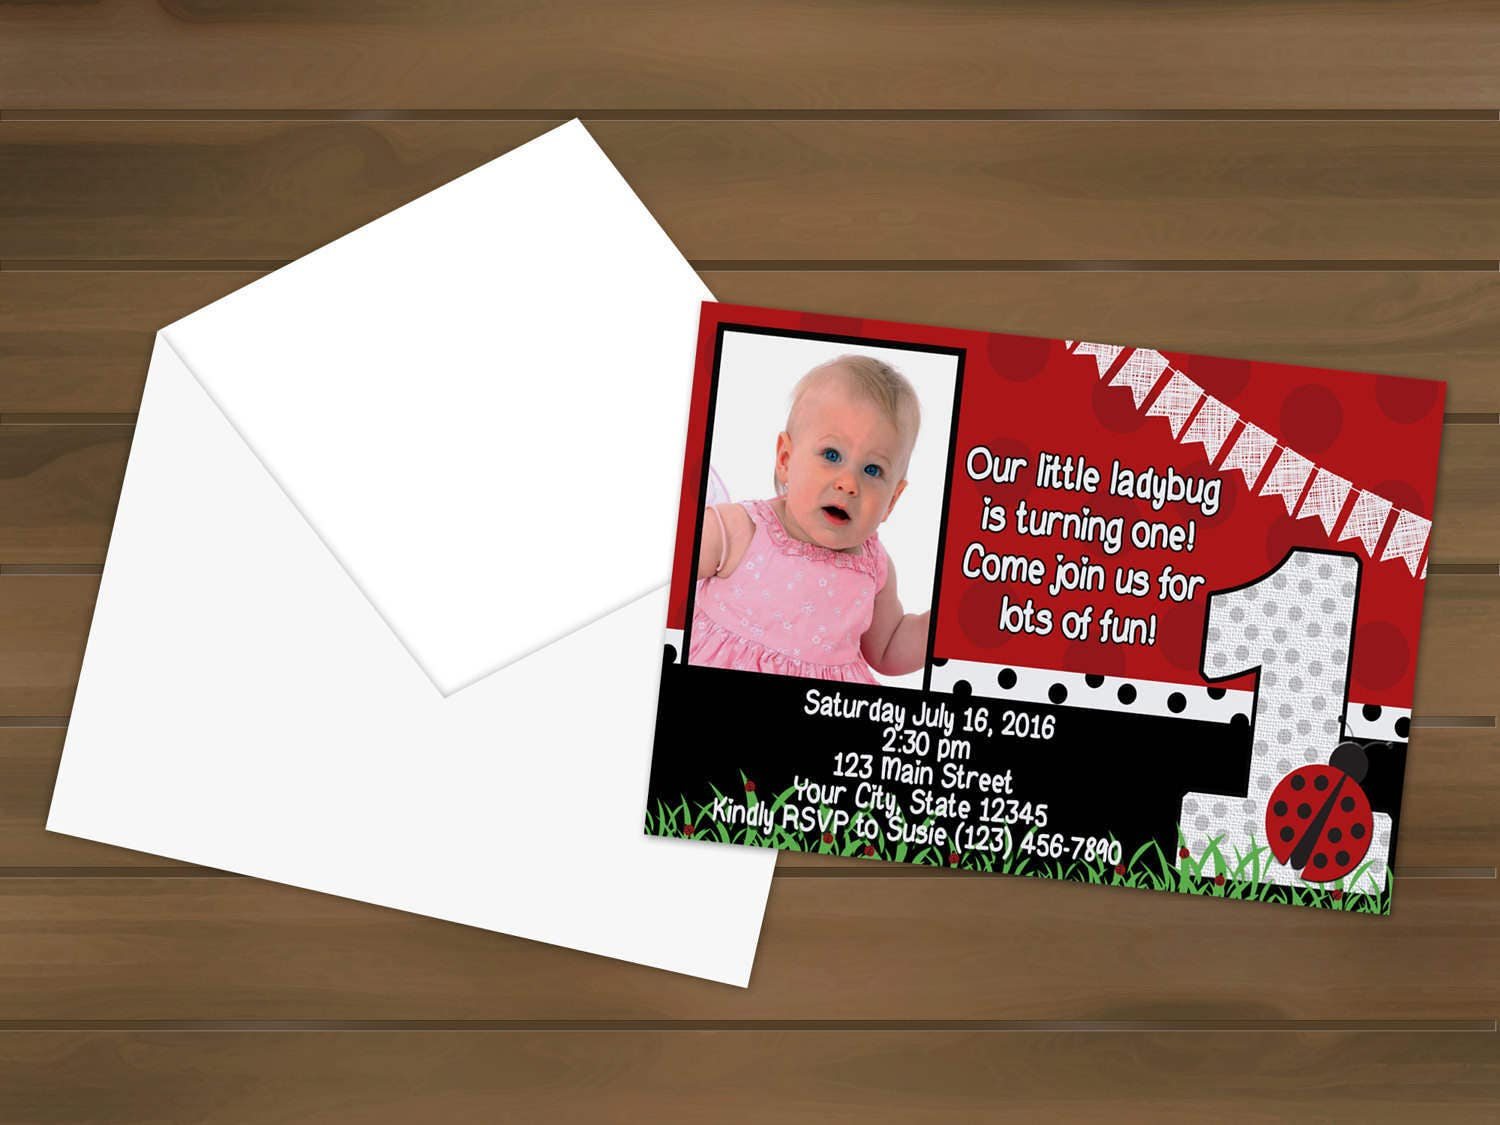 Ladybug first birthday invitations ladybug party ladybug ladybug first birthday invitations ladybug party ladybug birthday first birthday ladybug invites birthday invitation filmwisefo Choice Image